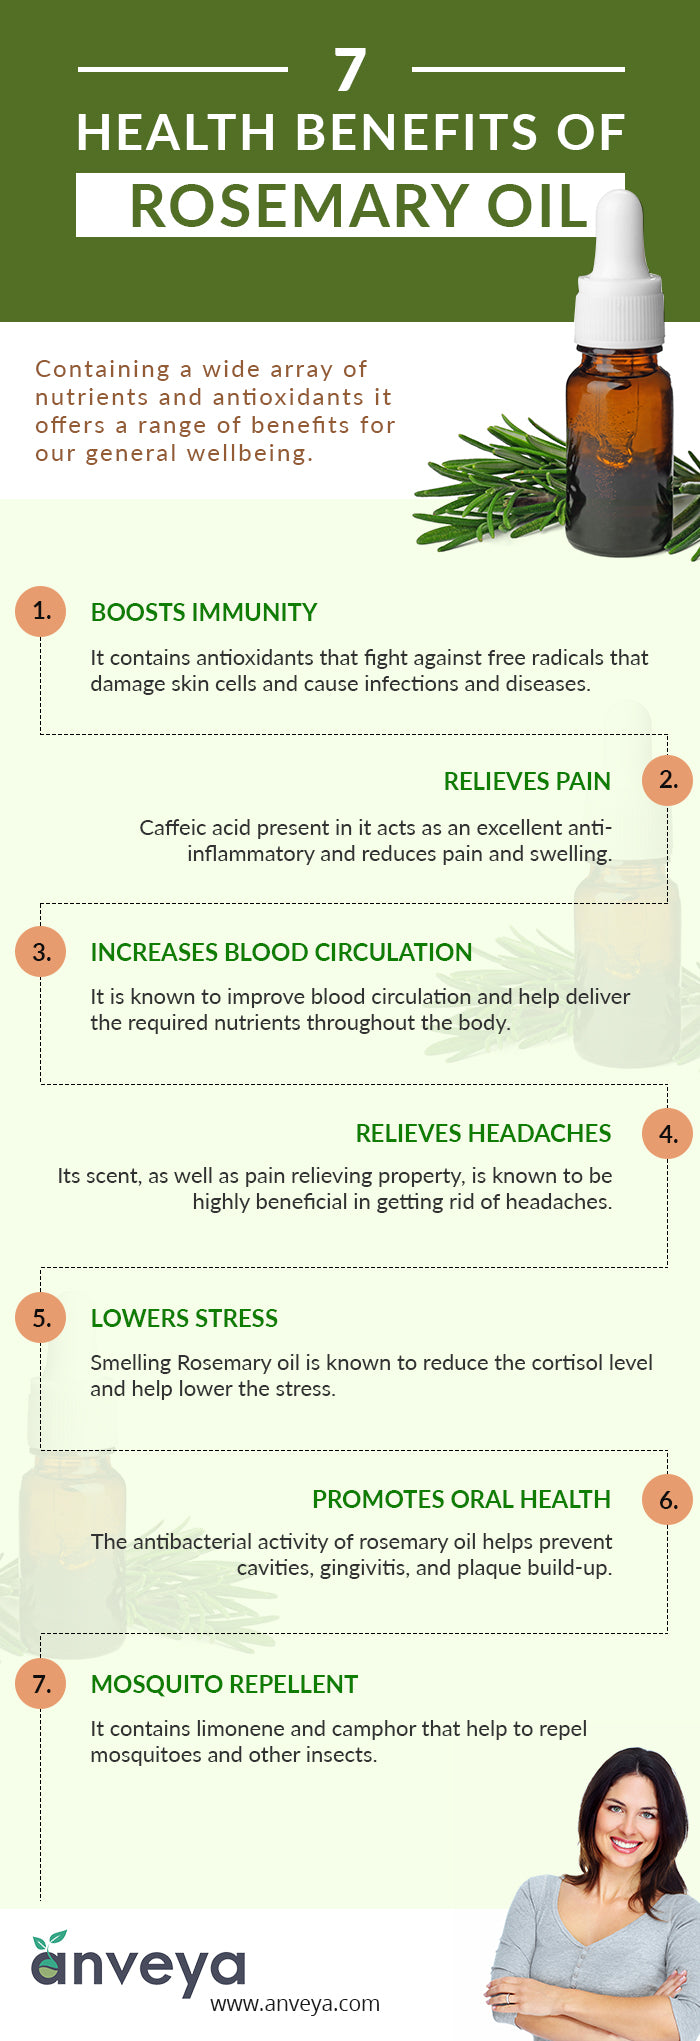 7 Health Benefits of Rosemary Oil